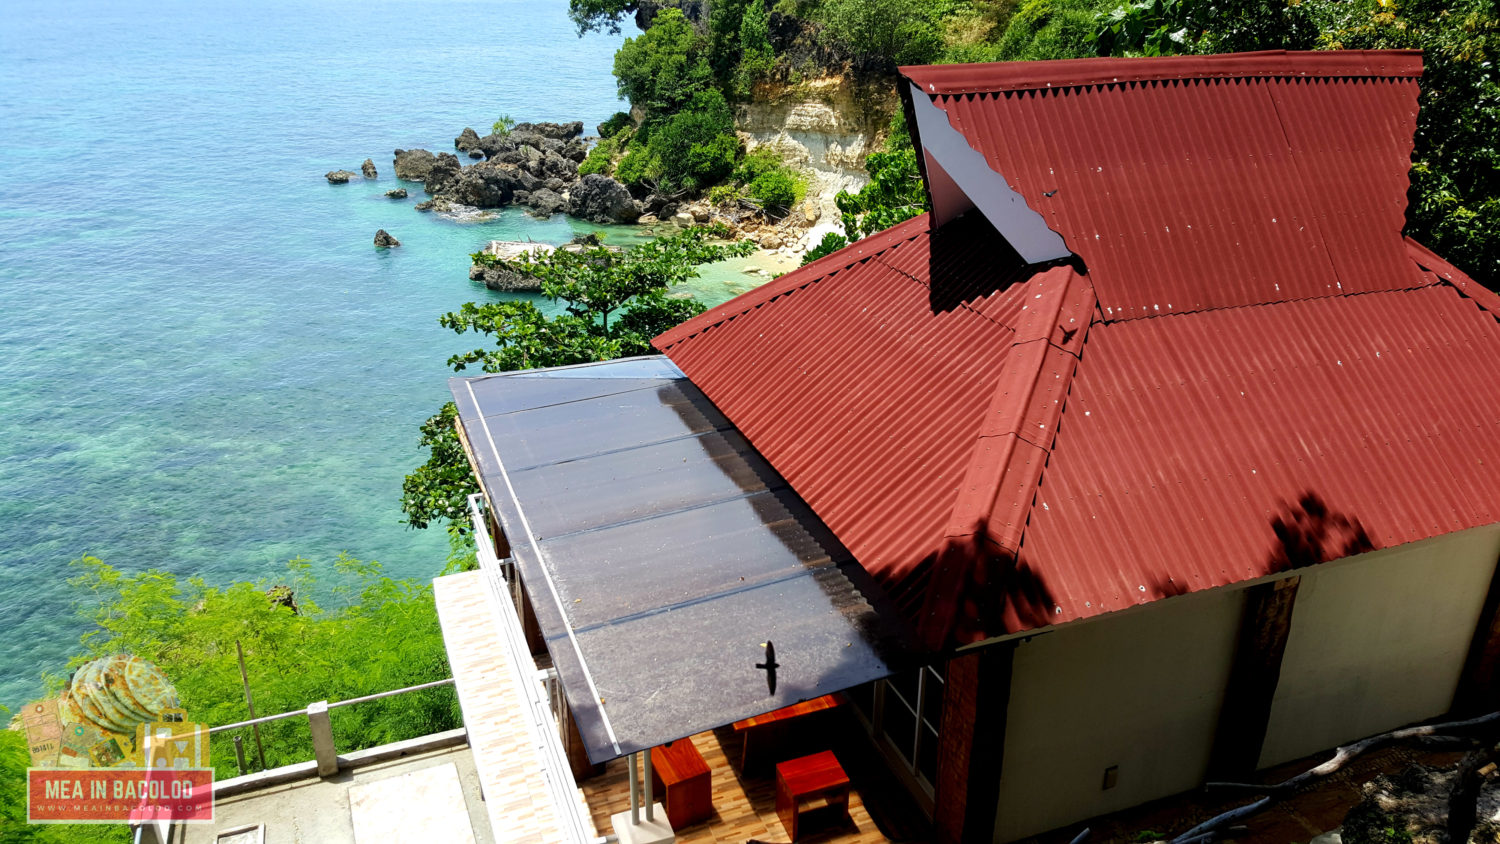 Guimaras Island Property For Sale